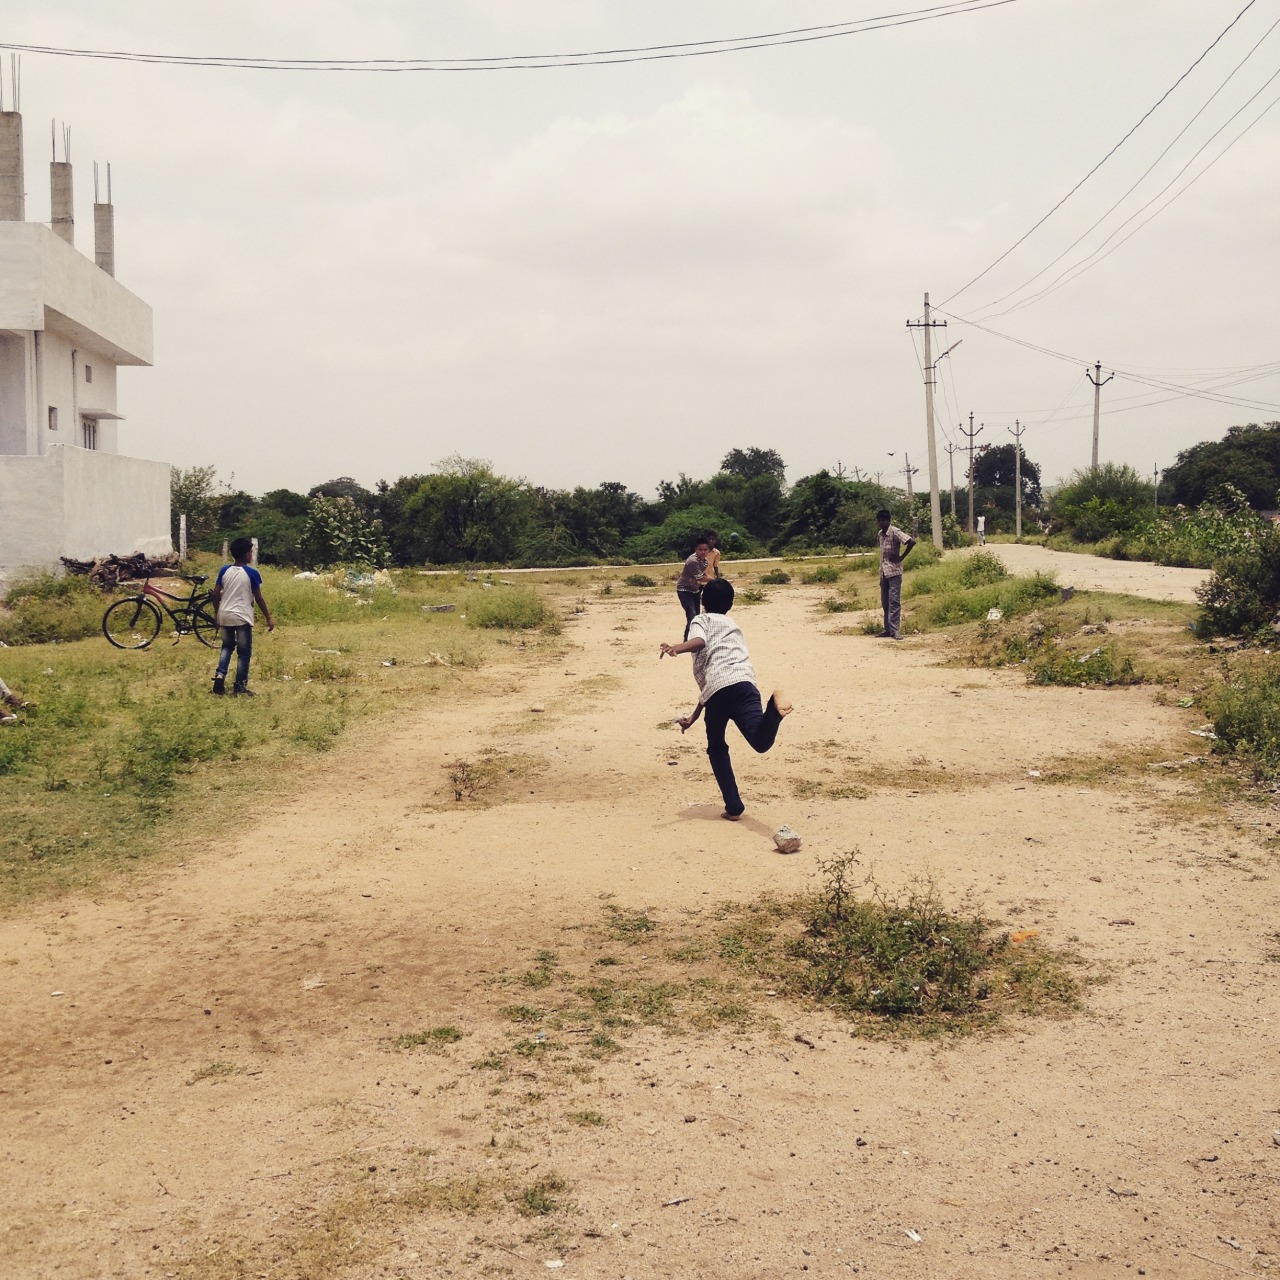 Playing cricket in the village